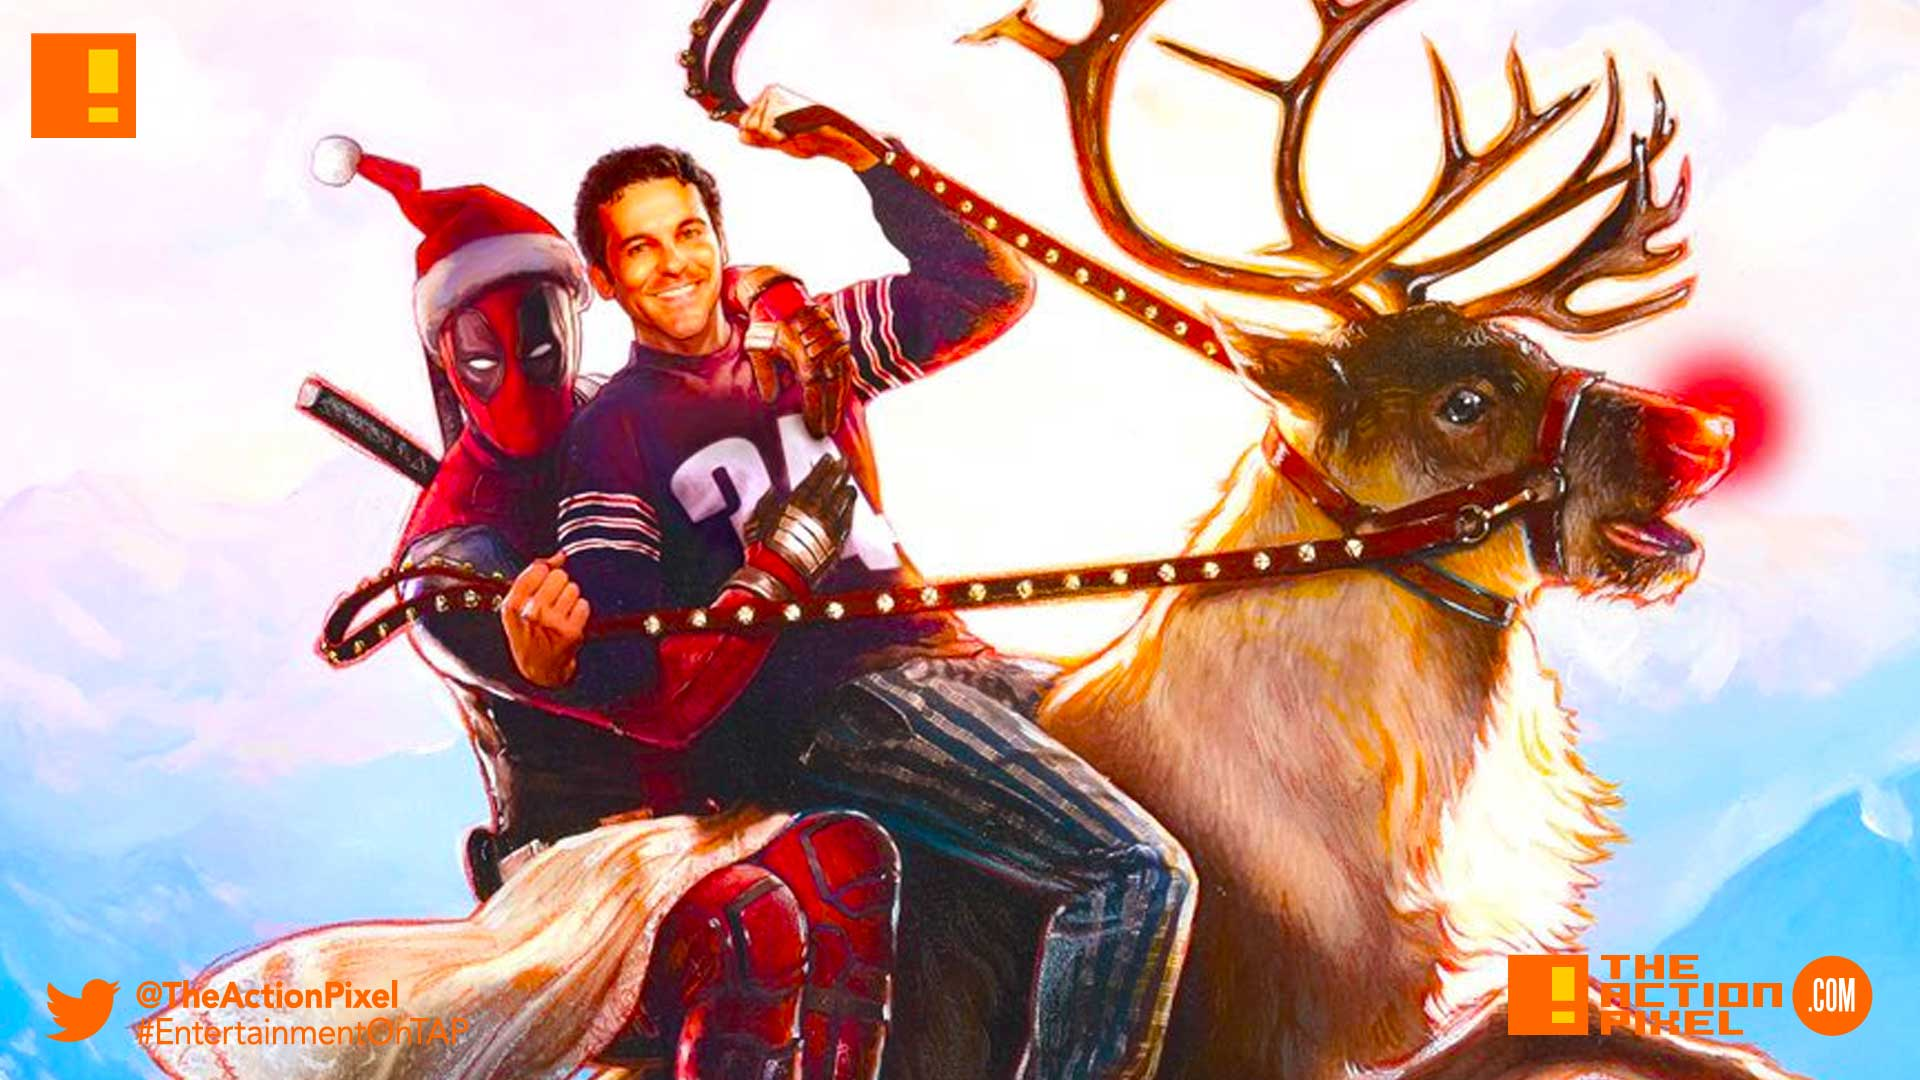 deadpool 2, fred savage, christmas, pg-13, disney, 20th century fox, deadpool, poster, fred savage, the wonder years,the action pixel, entertainment on tap